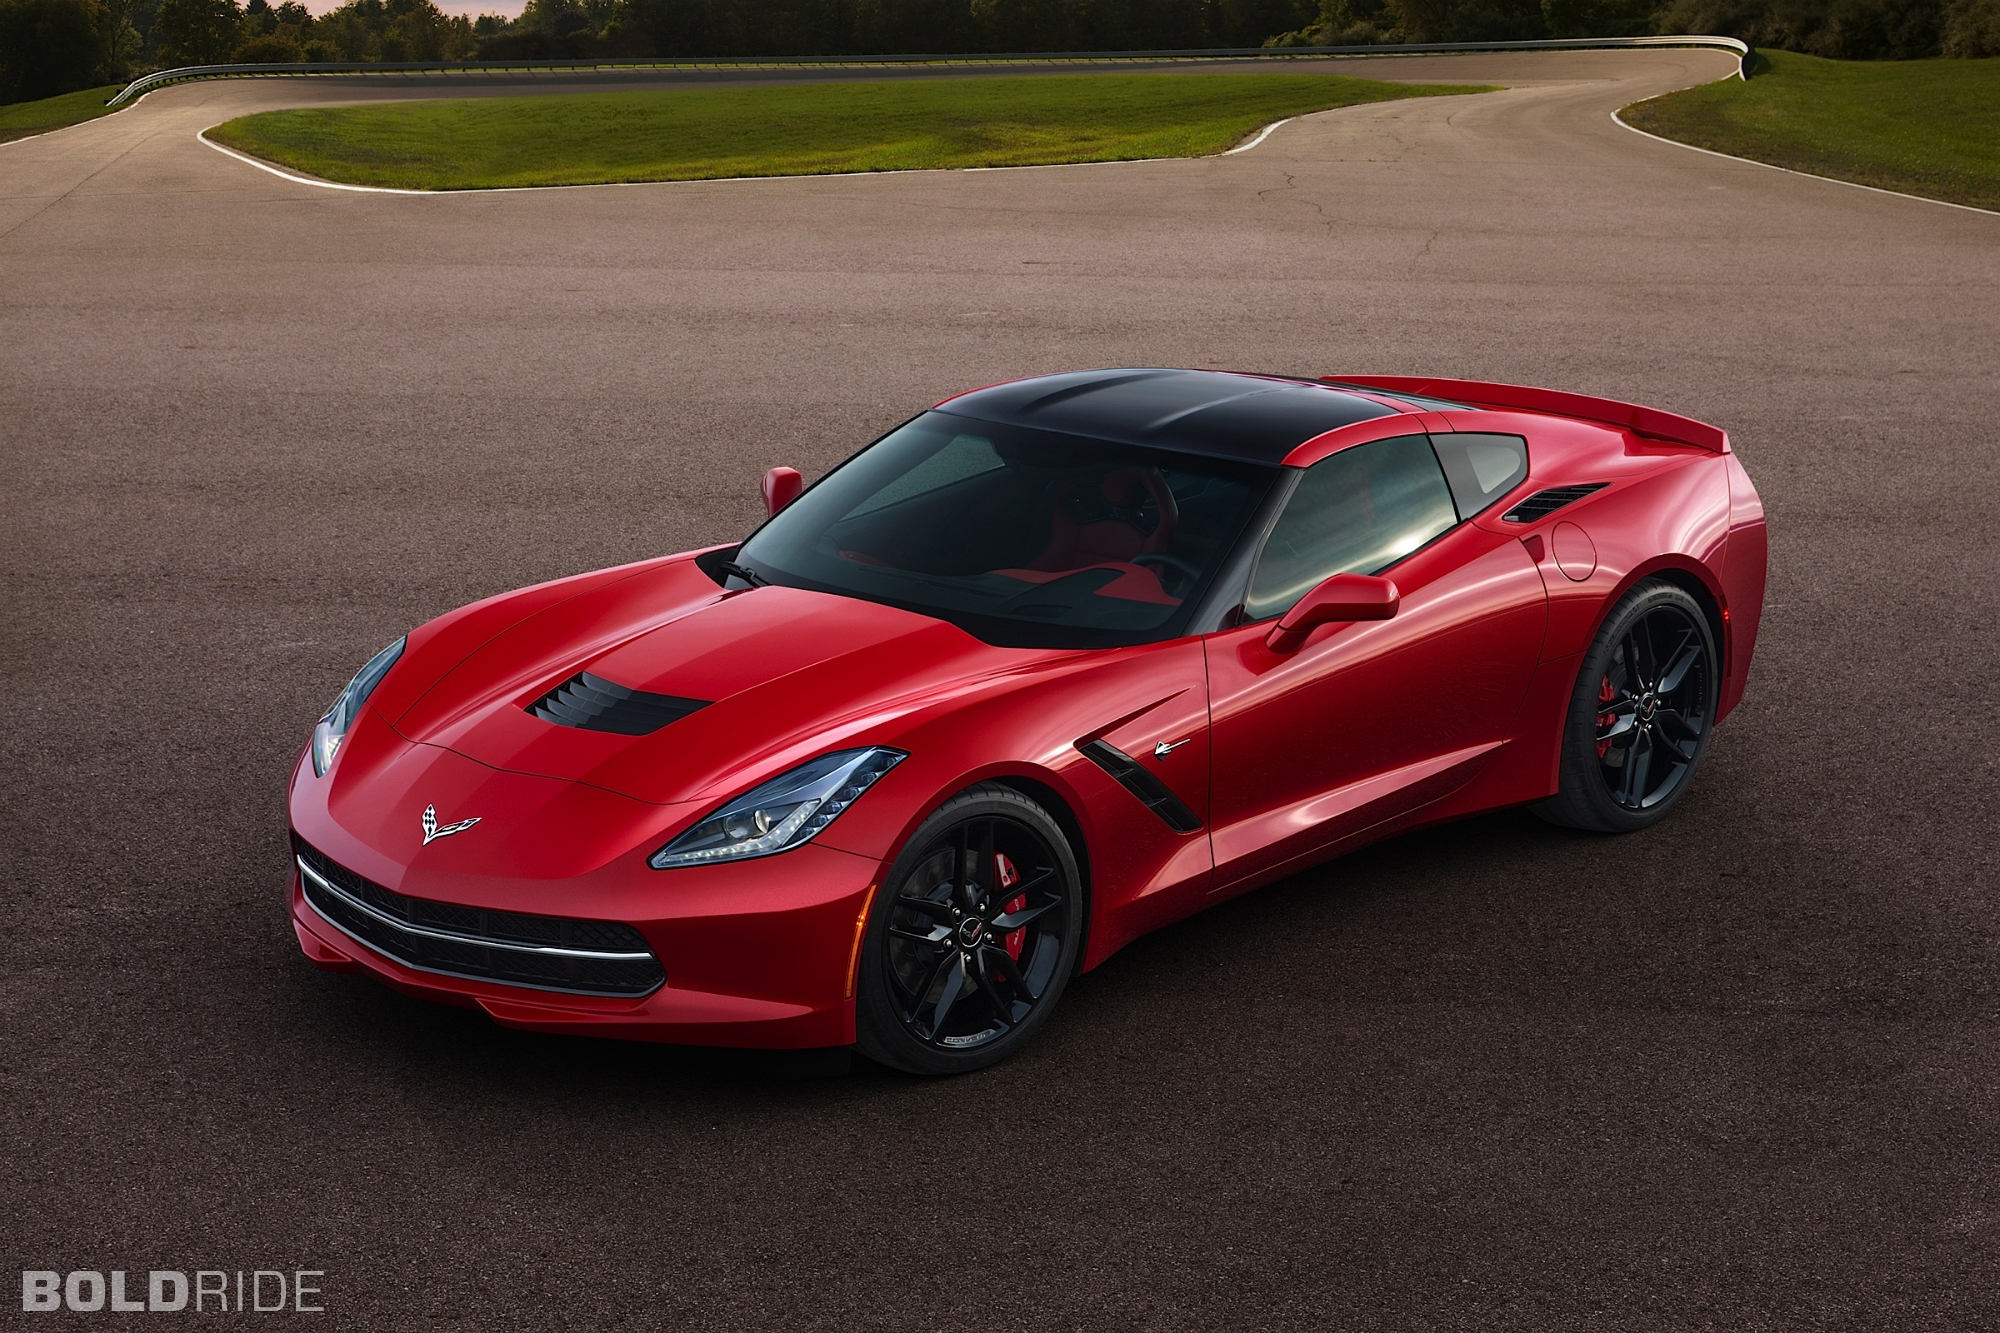 2014 Chevrolet Corvette Stingray 1600 x 1200